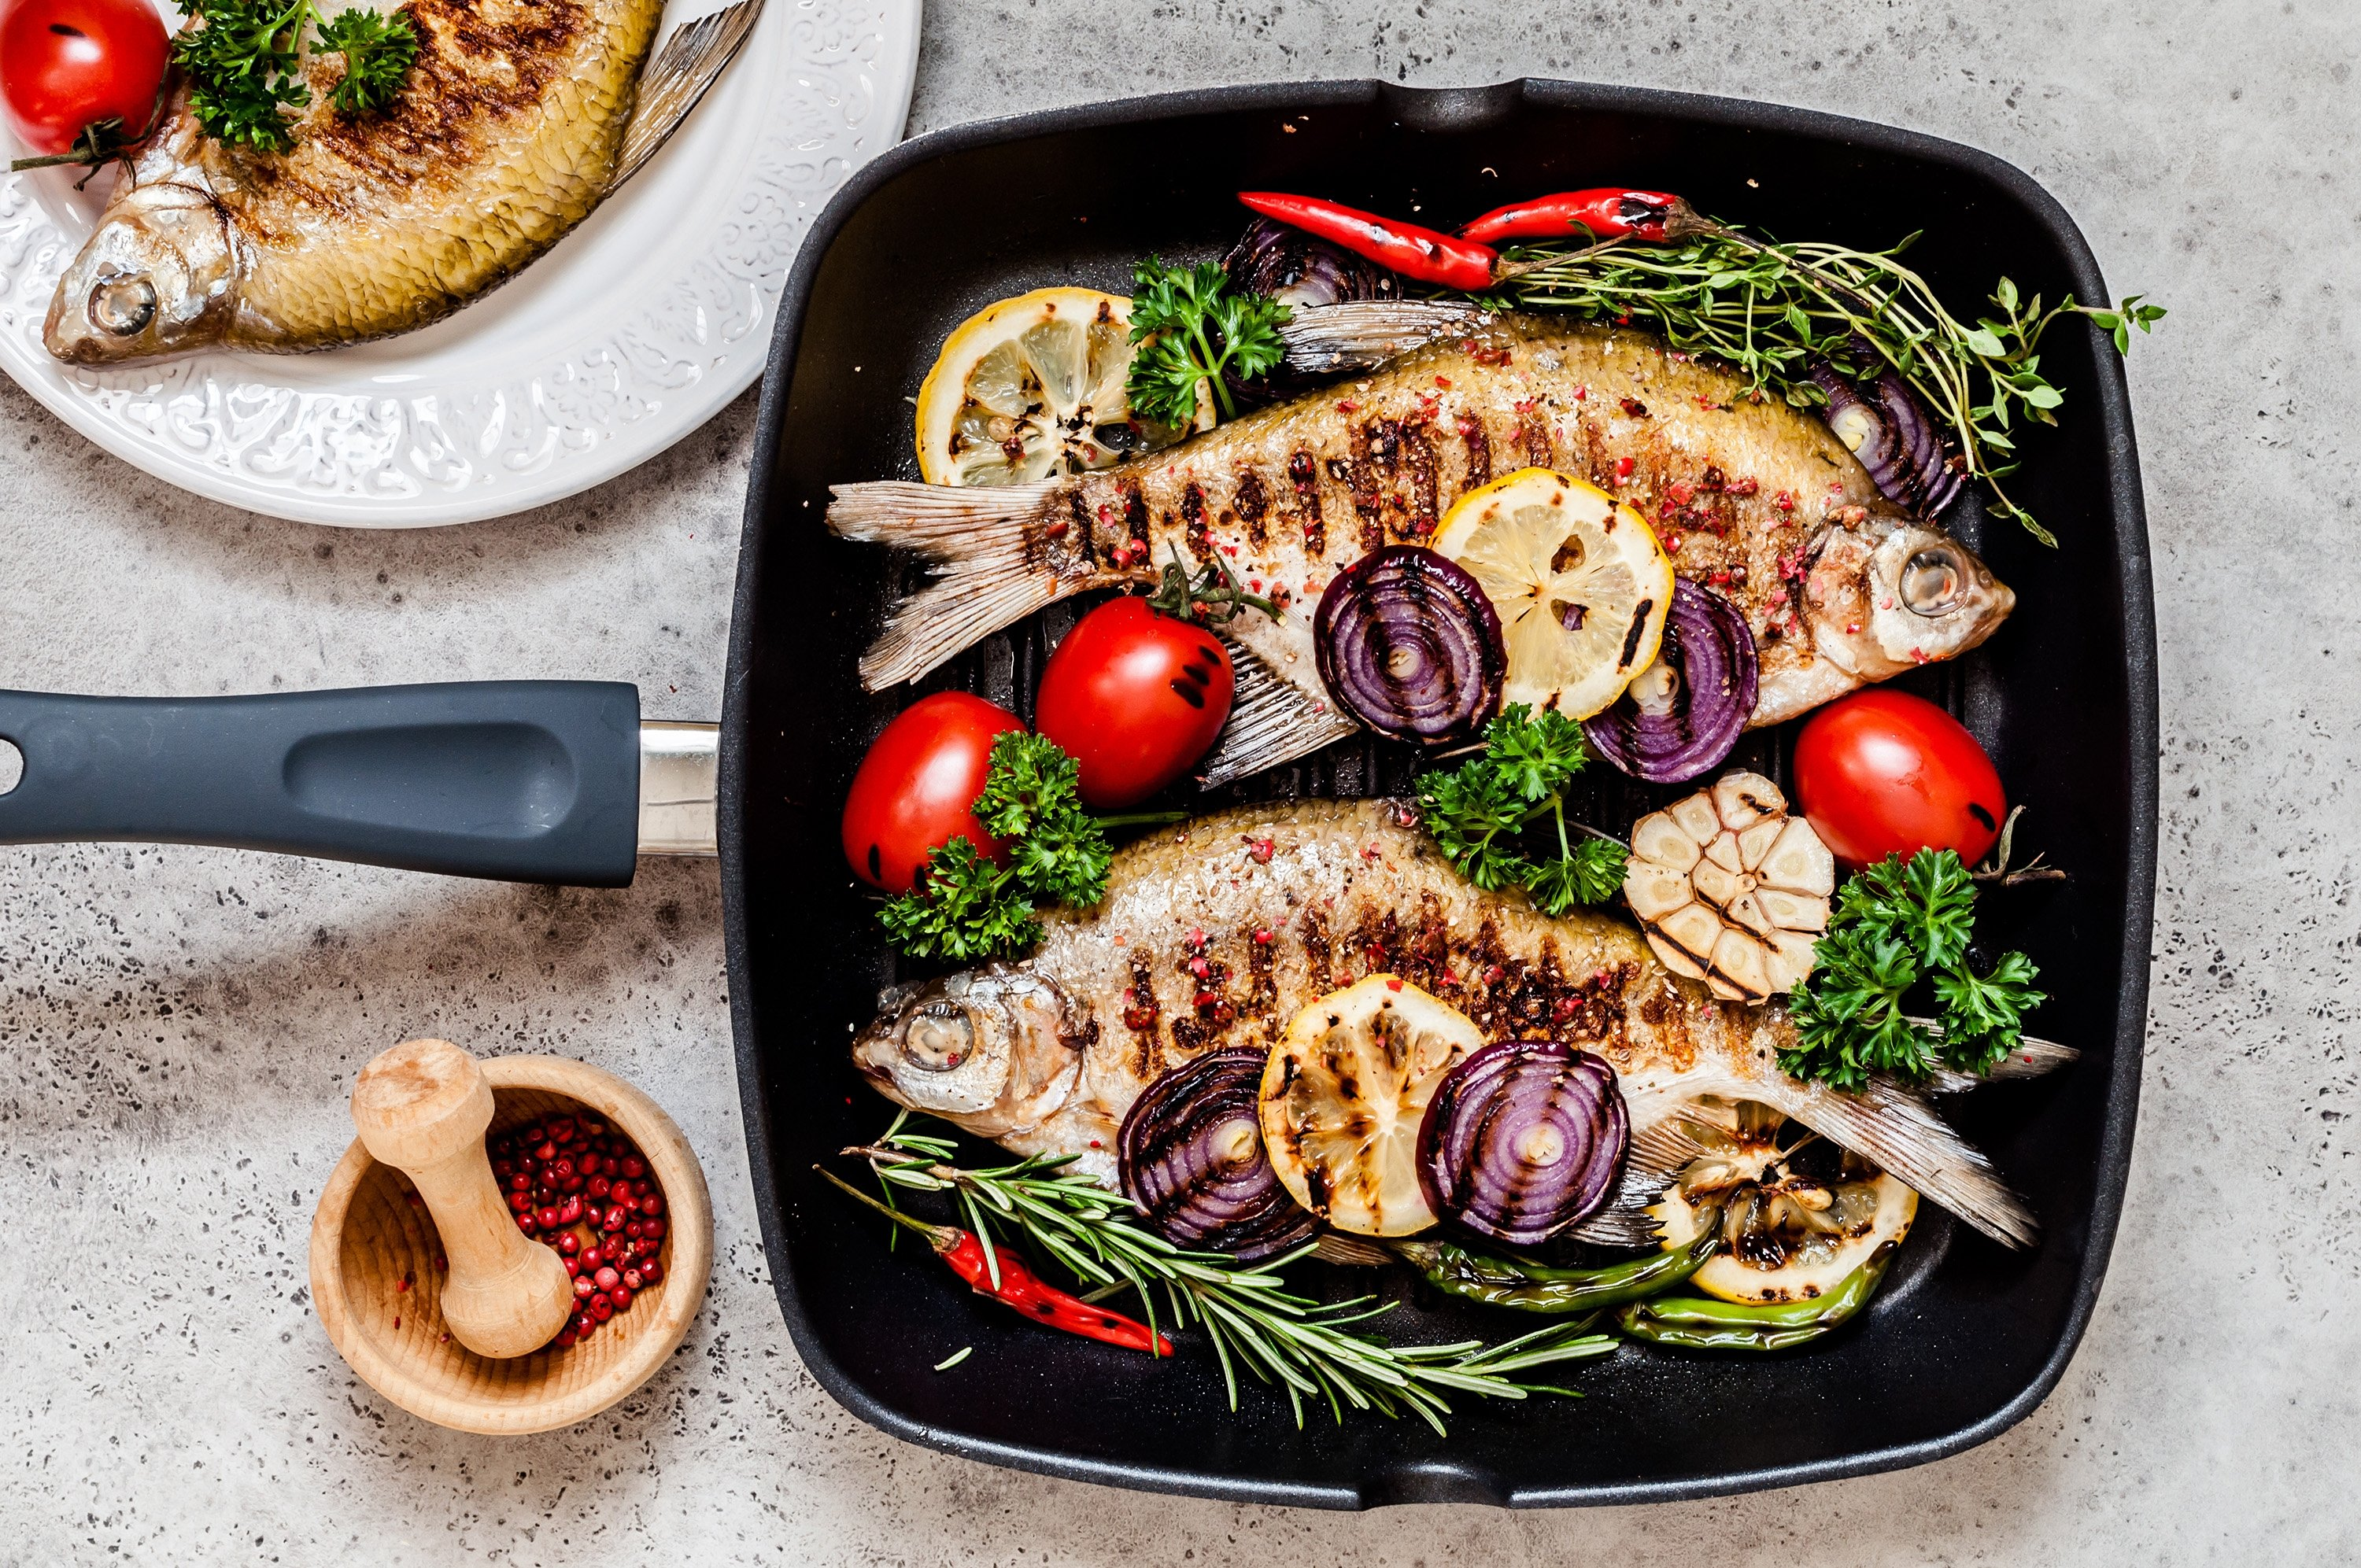 Try eating fish at least once or twice a week to get omega 3s and zinc. (Shutterstock Photo)